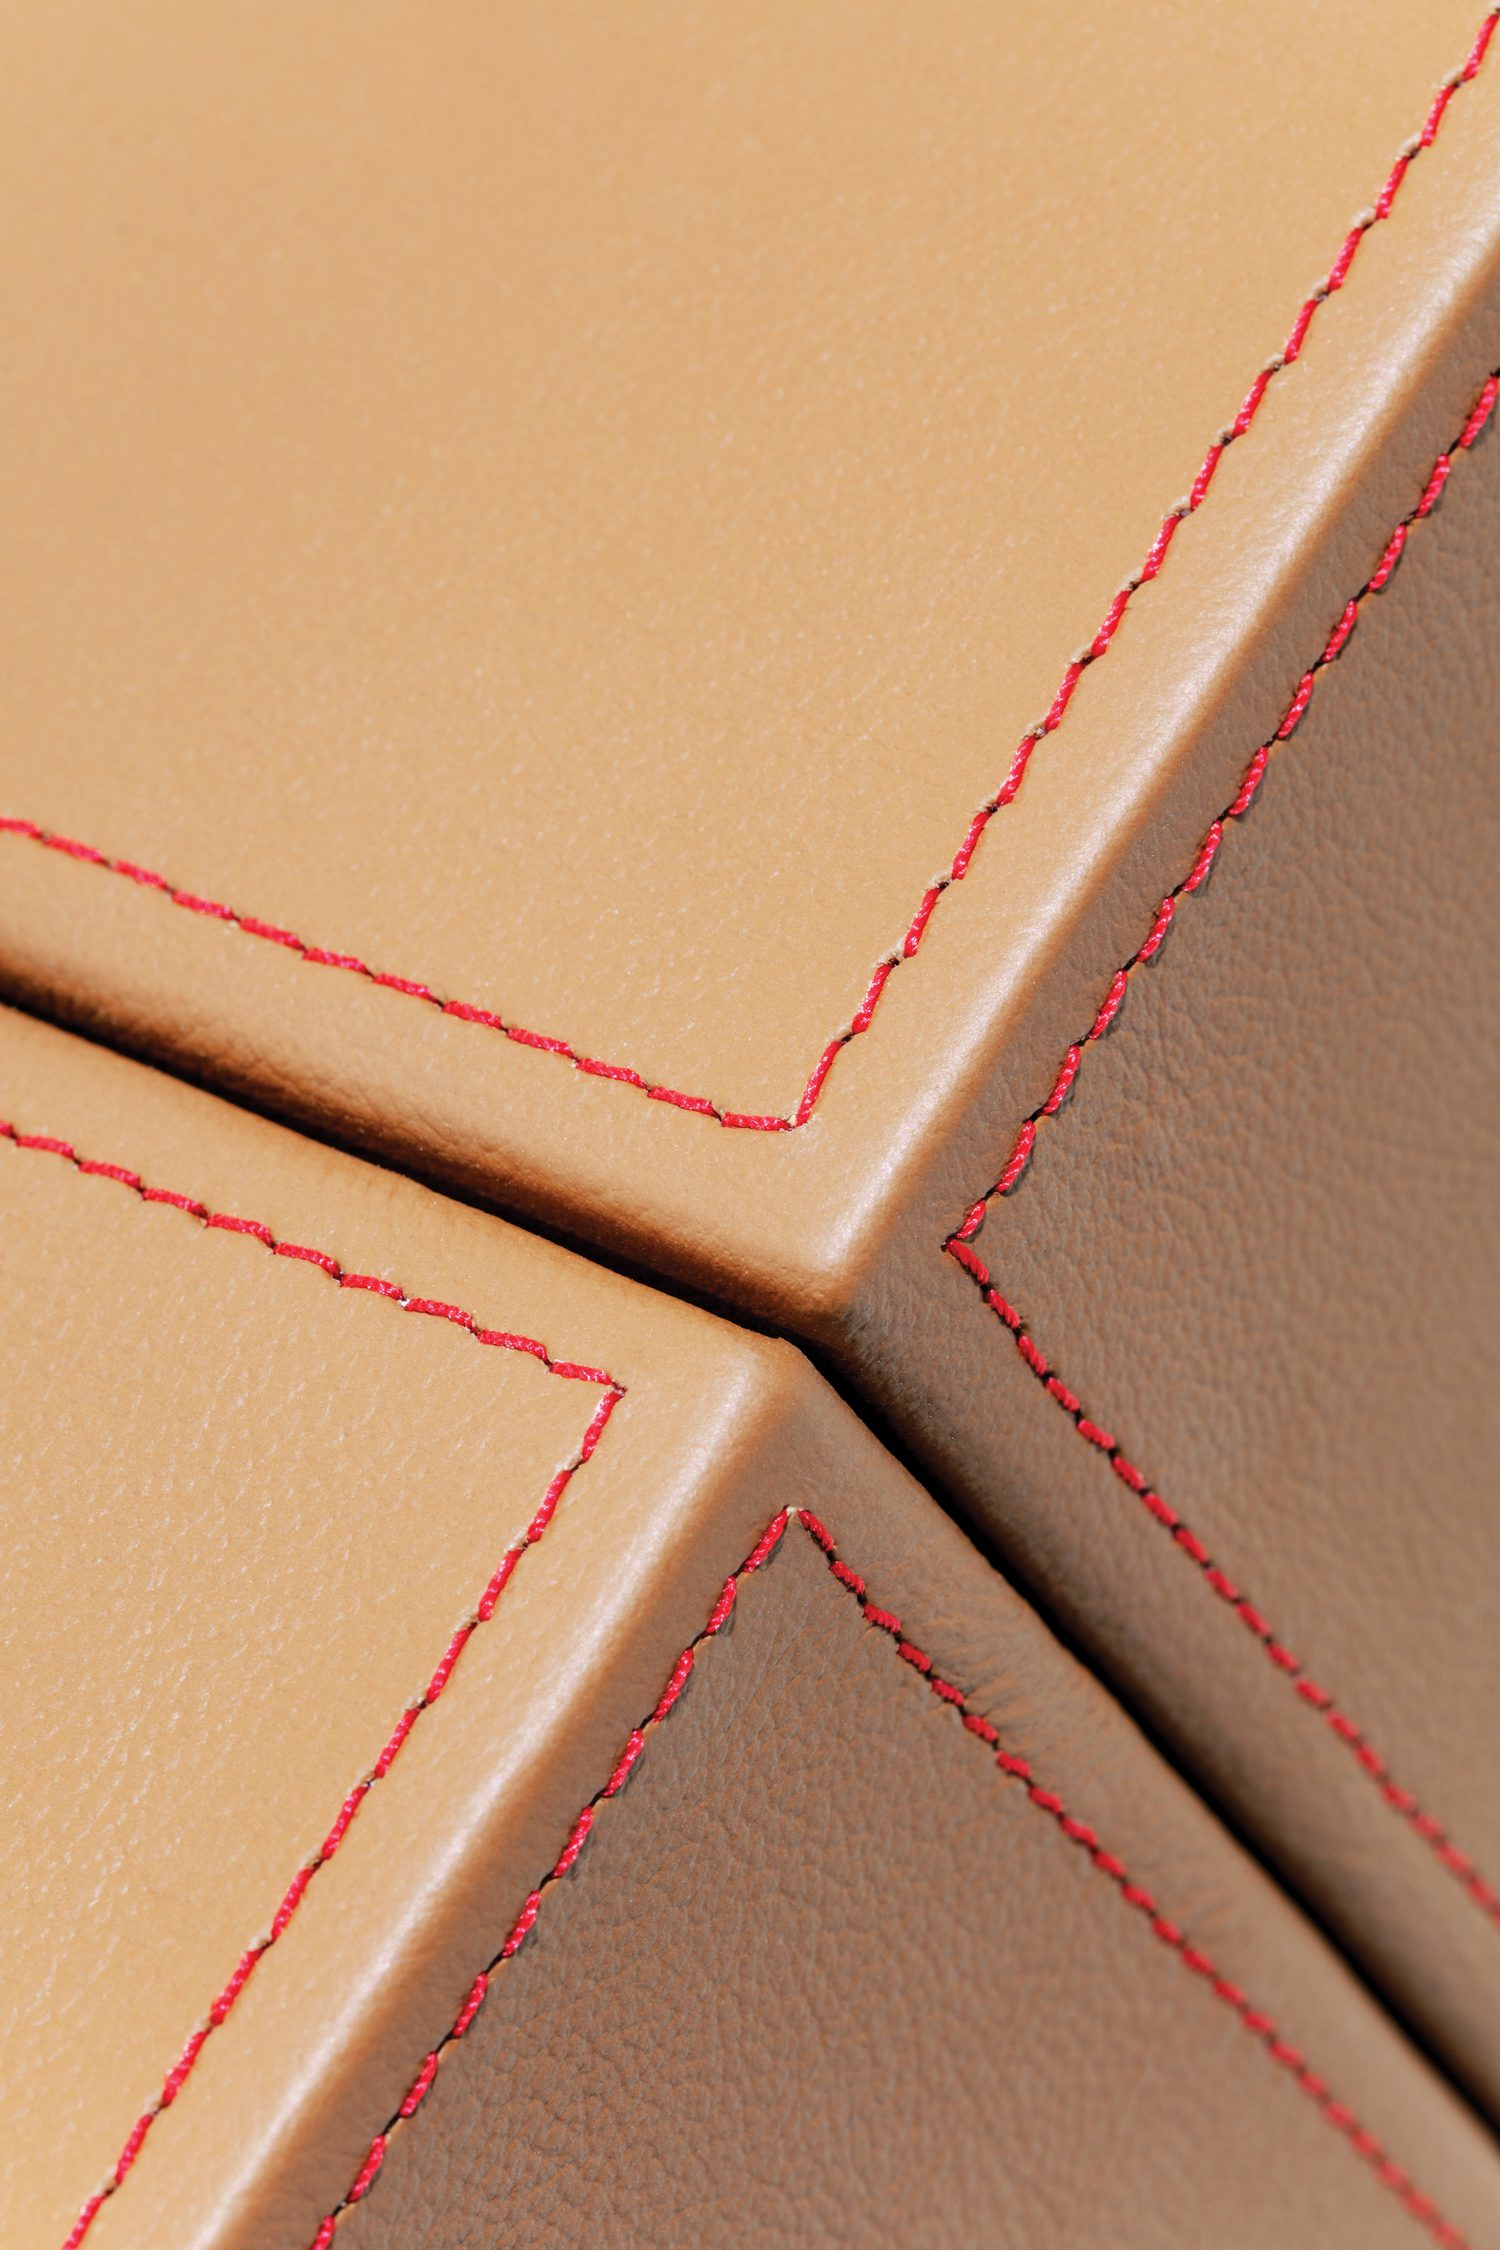 Stitching detail on the reception desk's leather top.